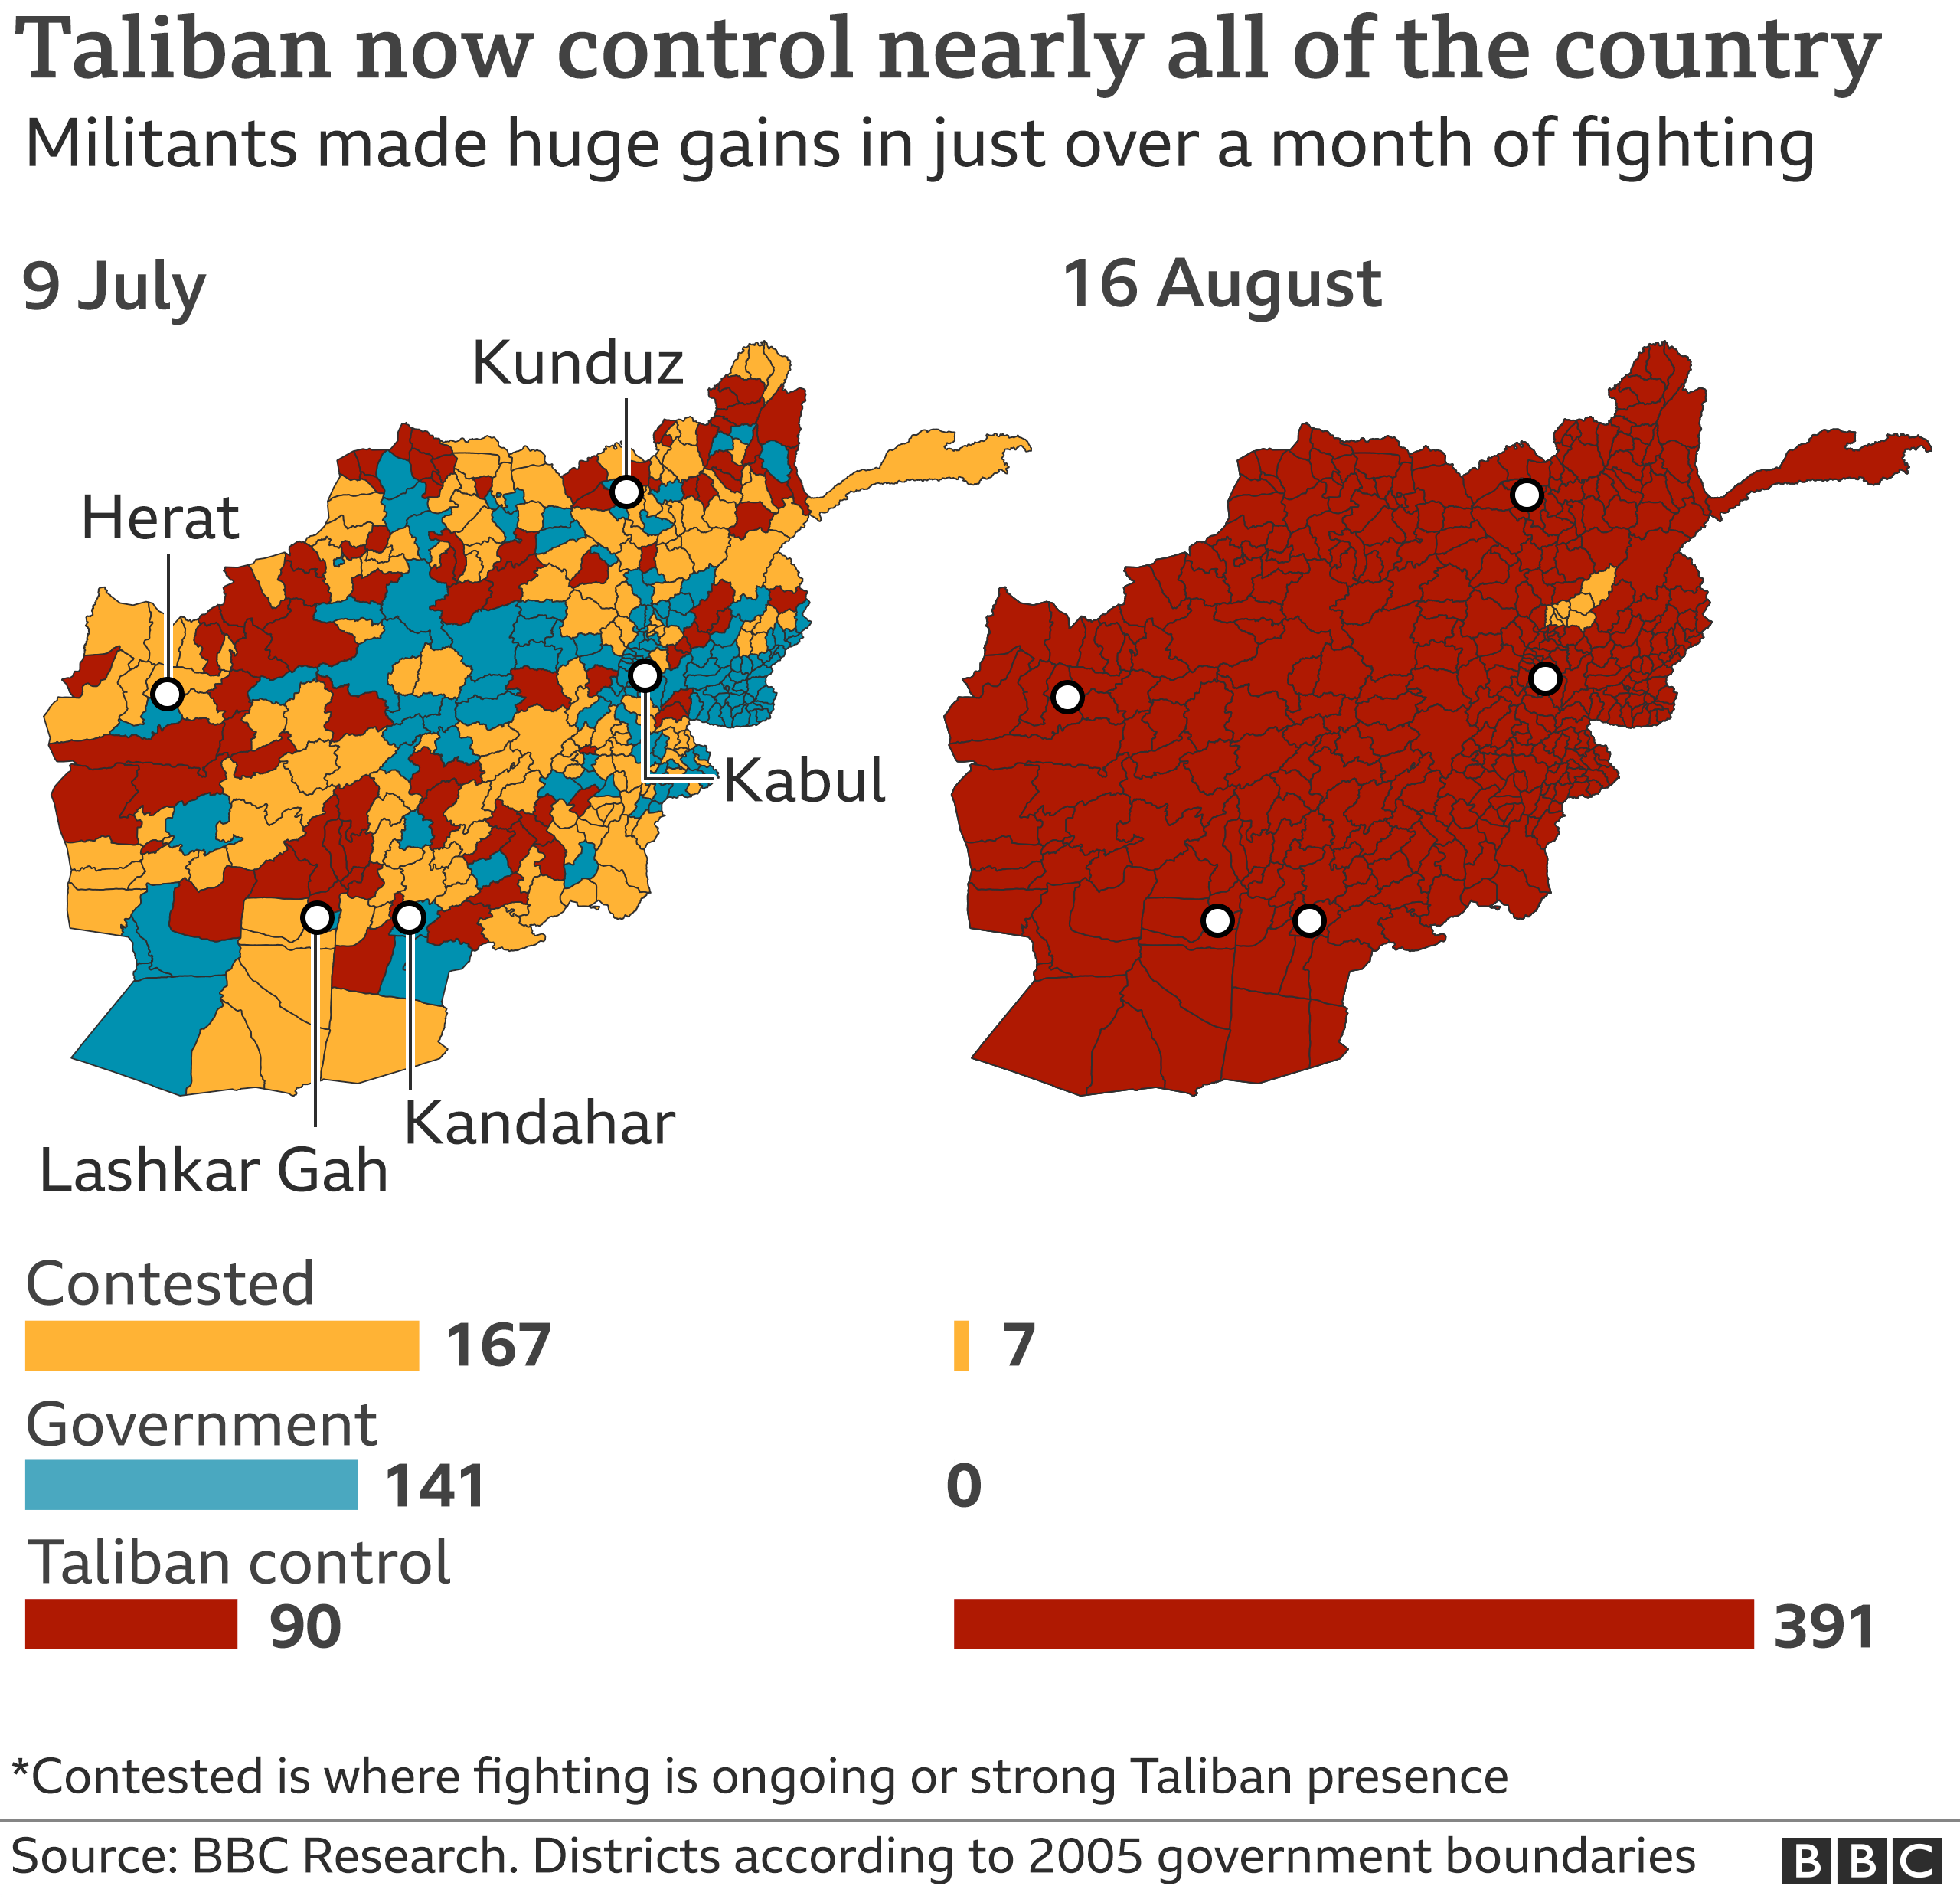 Map showing advances Taliban made in just over a month of fighting